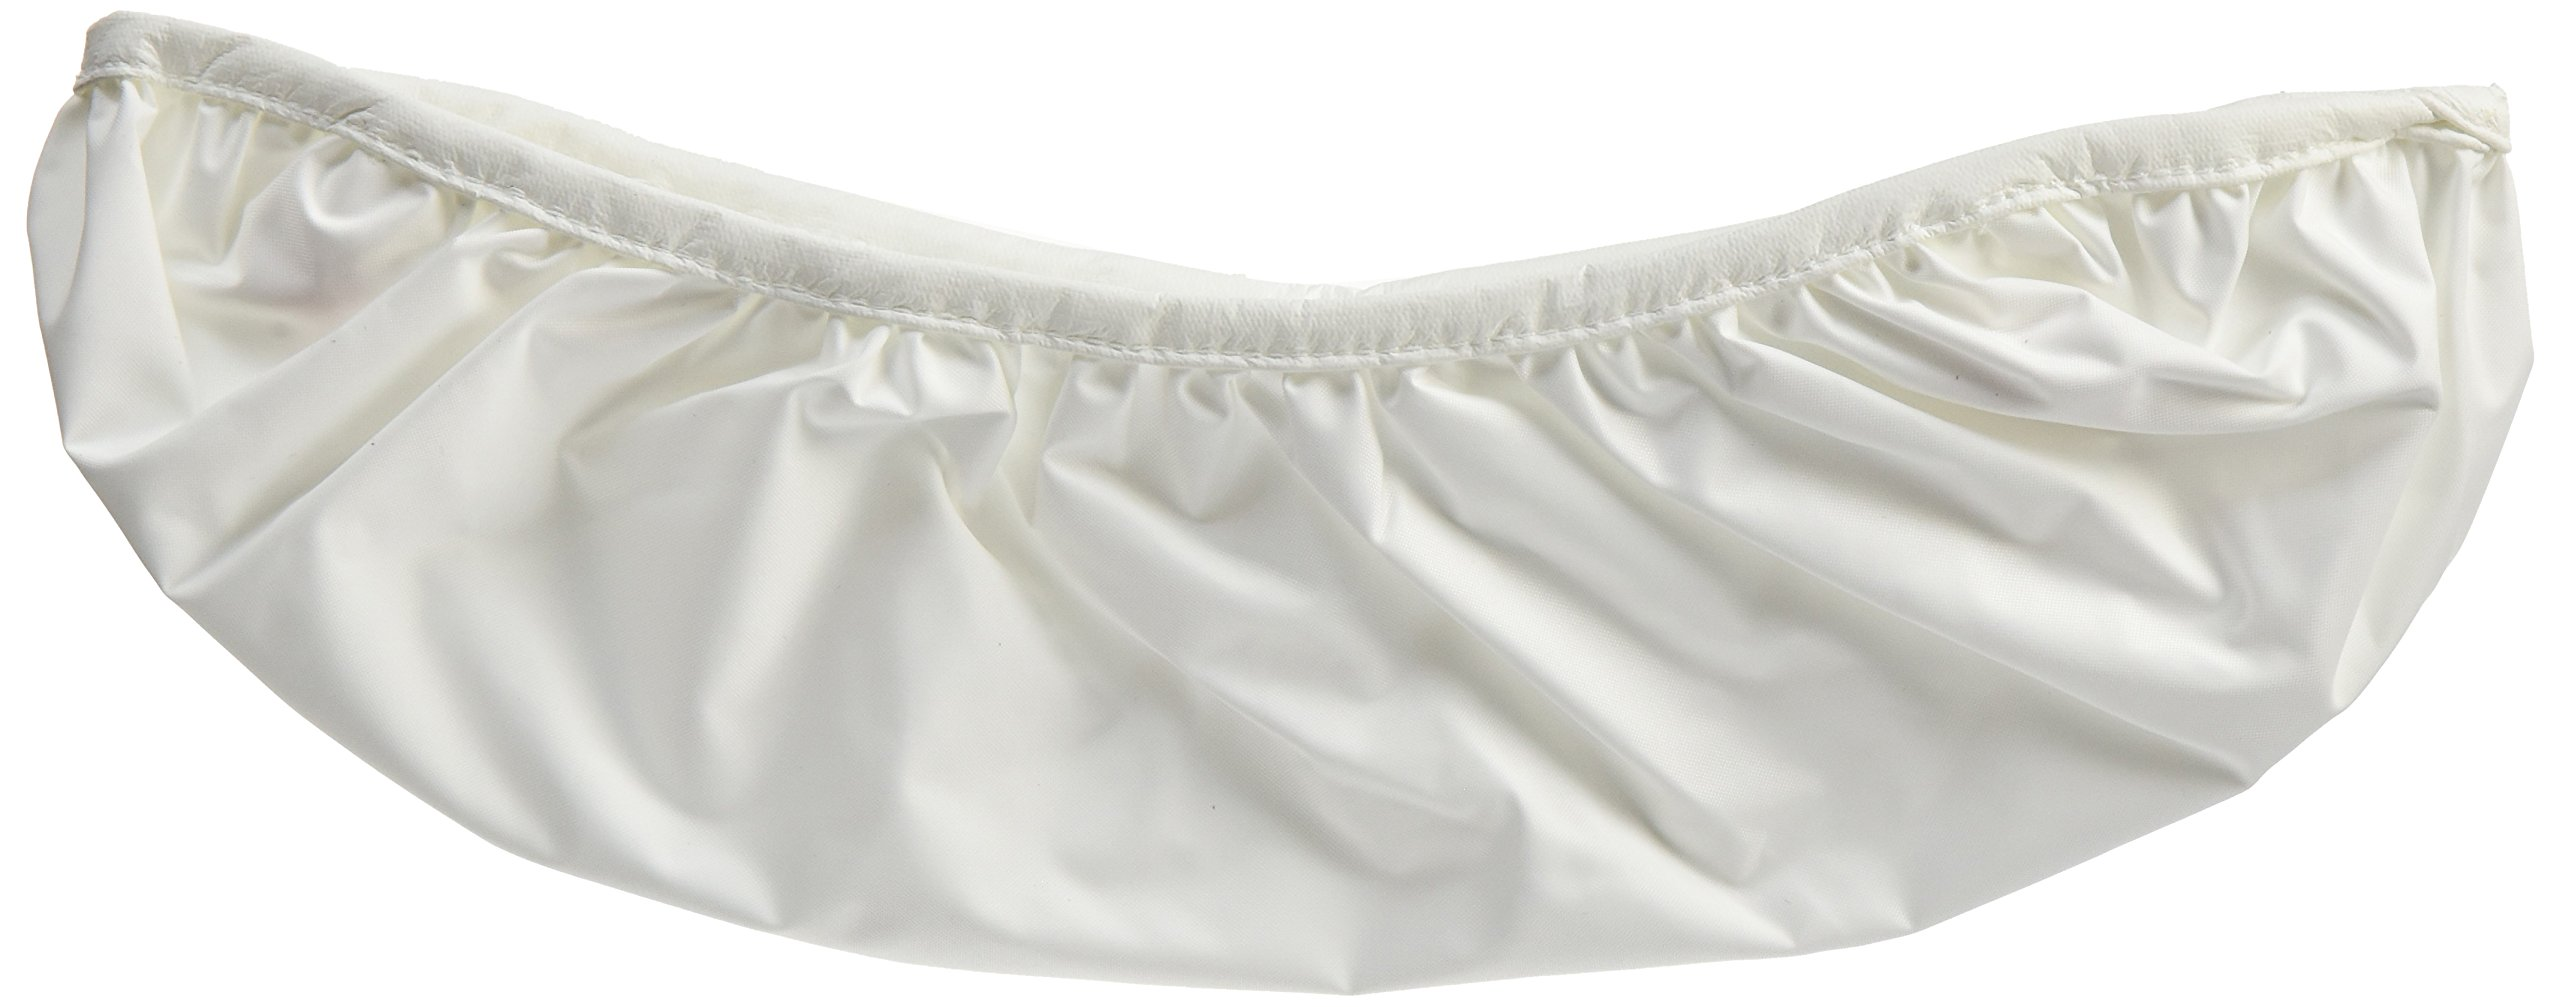 gDiapers gPants Pouches, Small (8-14 lbs)